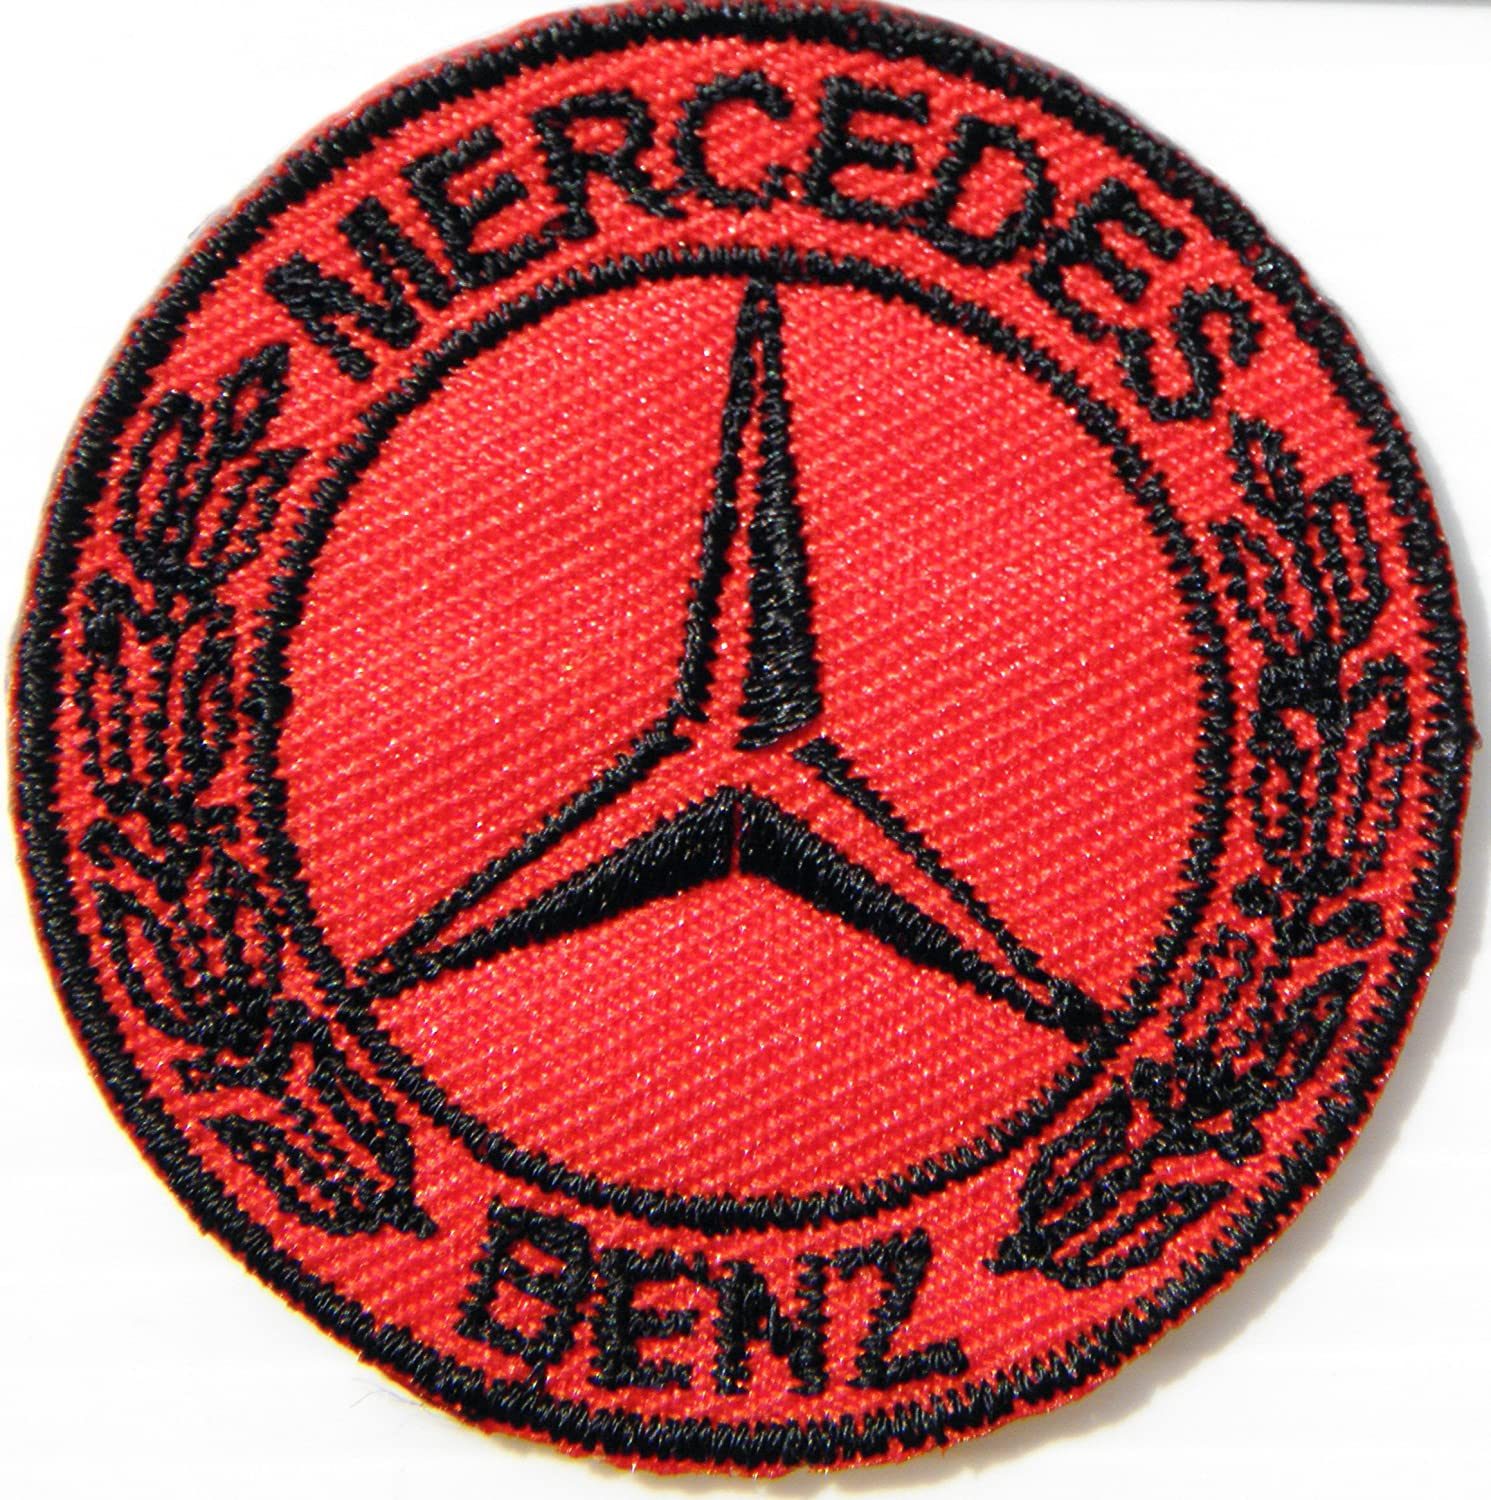 Mercedes Benz Logo Sign AMG Sport Car Racing Patch Sew Iron on Applique Embroidered T shirt Jacket BY SURAPAN